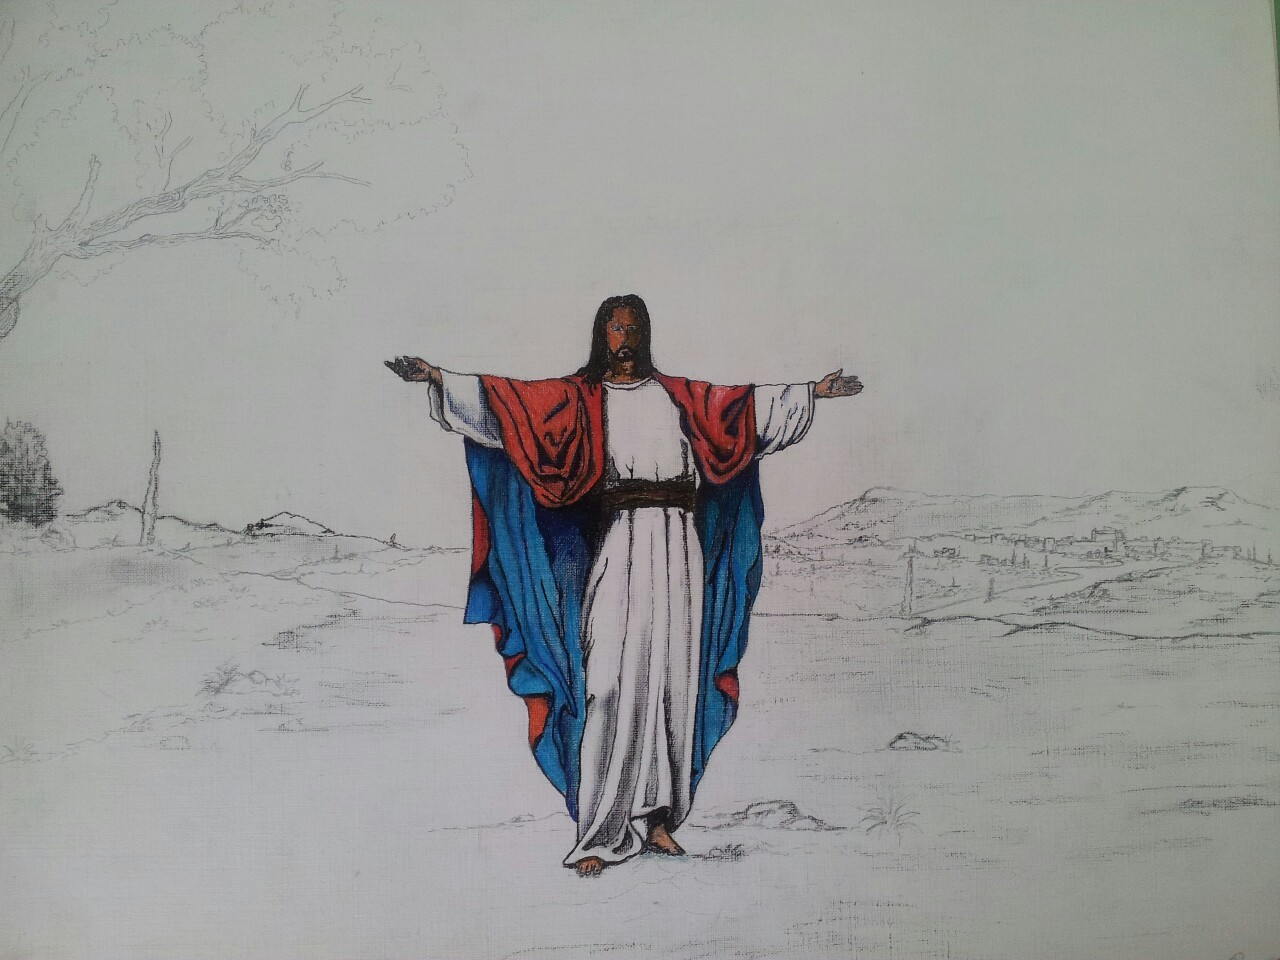 Le christ rédempteur , Bruno Grangeon